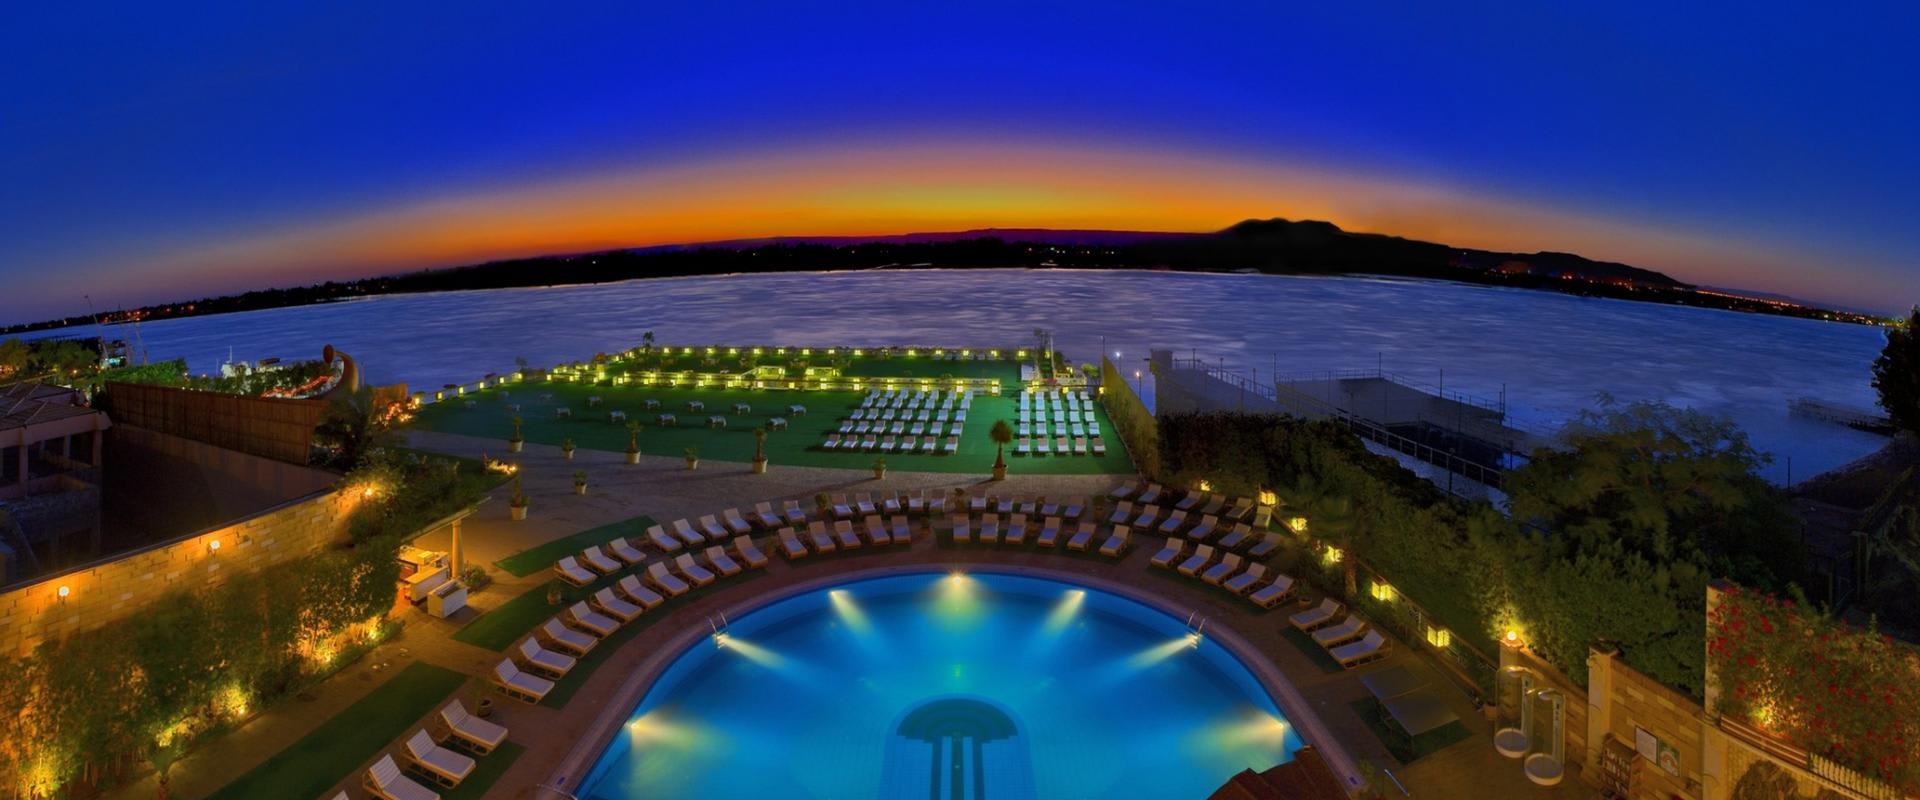 Exterior Pool at Sunset